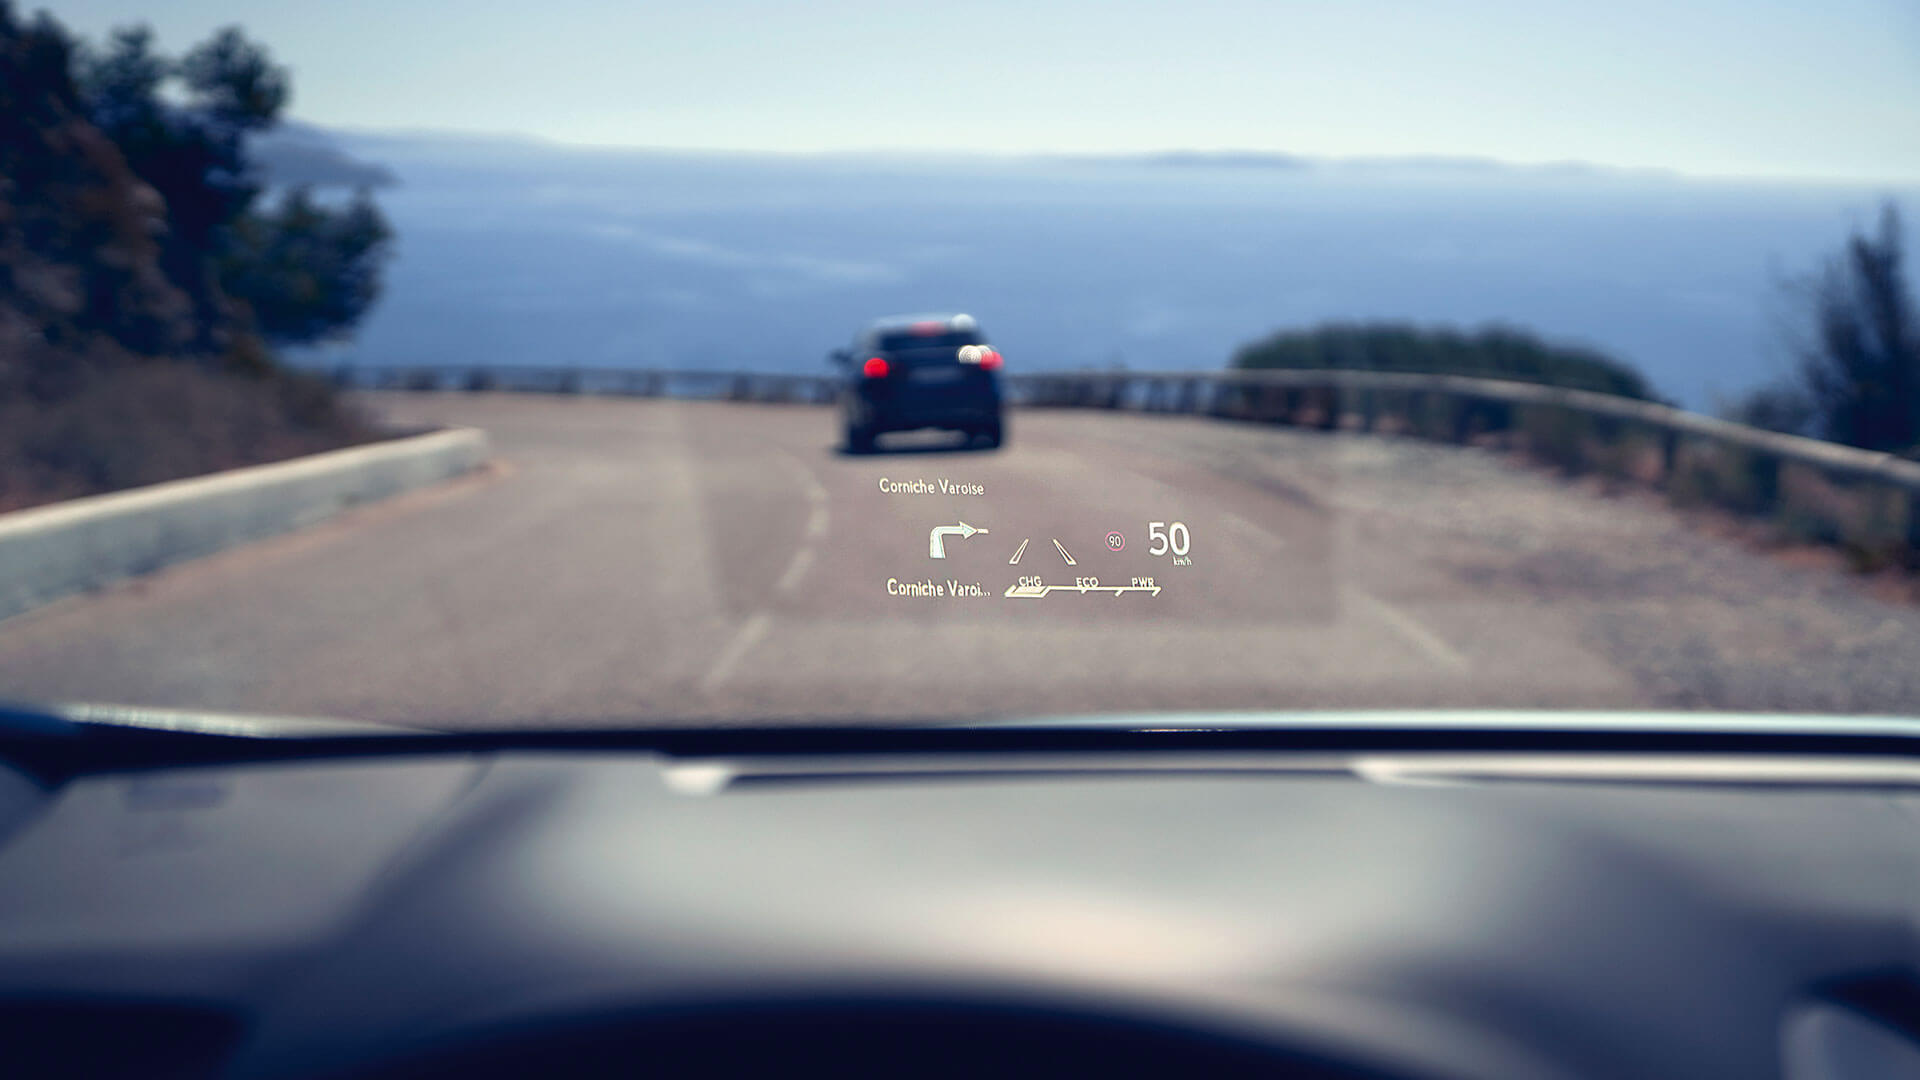 2019 lexus rxl hotspot extra wide head up display